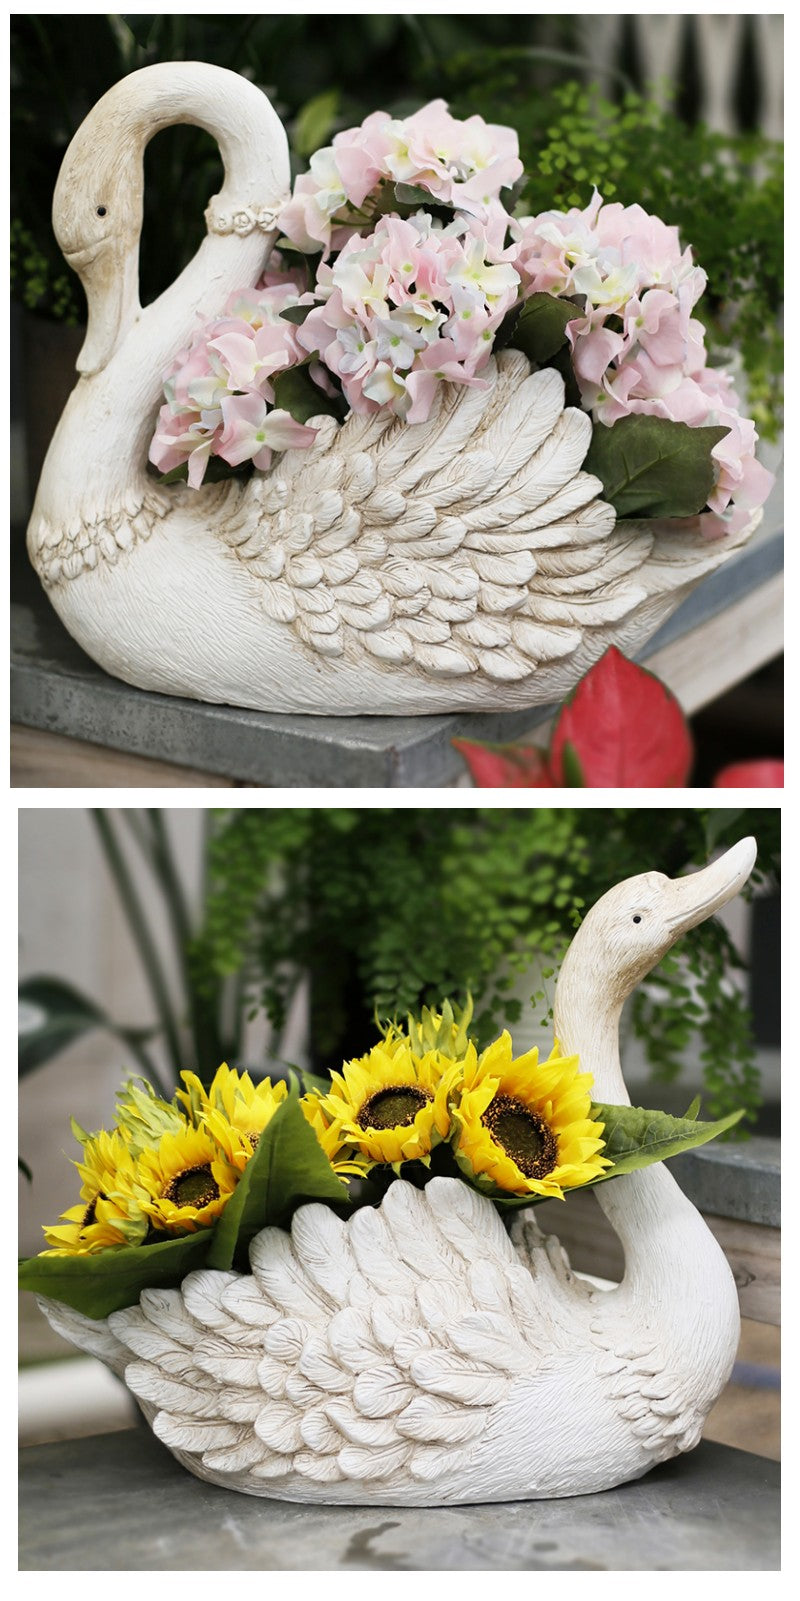 White Swan Flower Pot, Small Animal Statue for Garden Ornament, Swan Lovers Statues, Villa Courtyard Decor, Outdoor Decoration Ideas, Garden Ideas